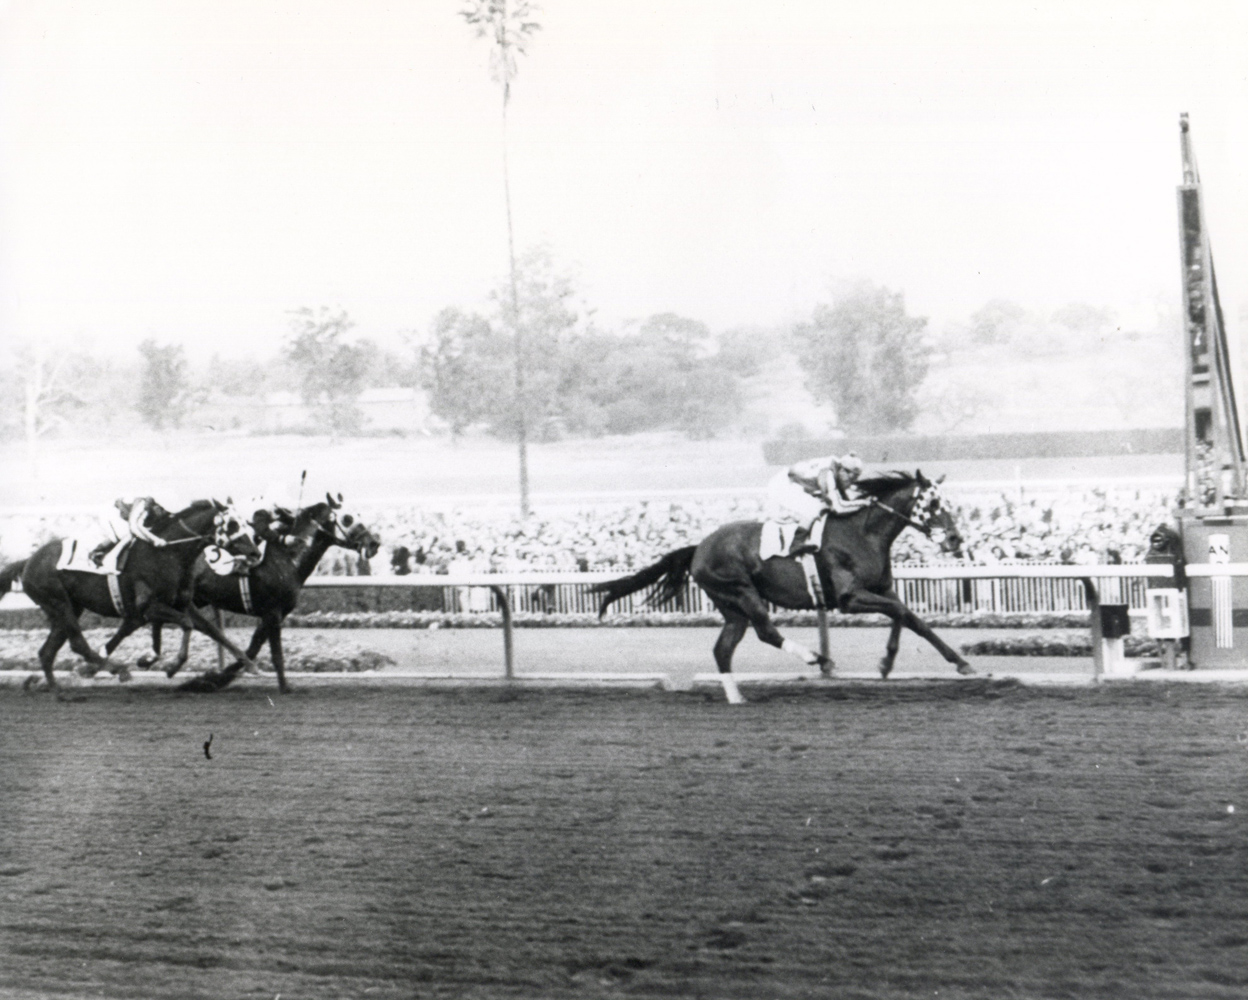 Hill Prince (Eddie Arcaro up) winning the 1952 San Marcos Handicap at Santa Anita (The BloodHorse/Museum Collection)